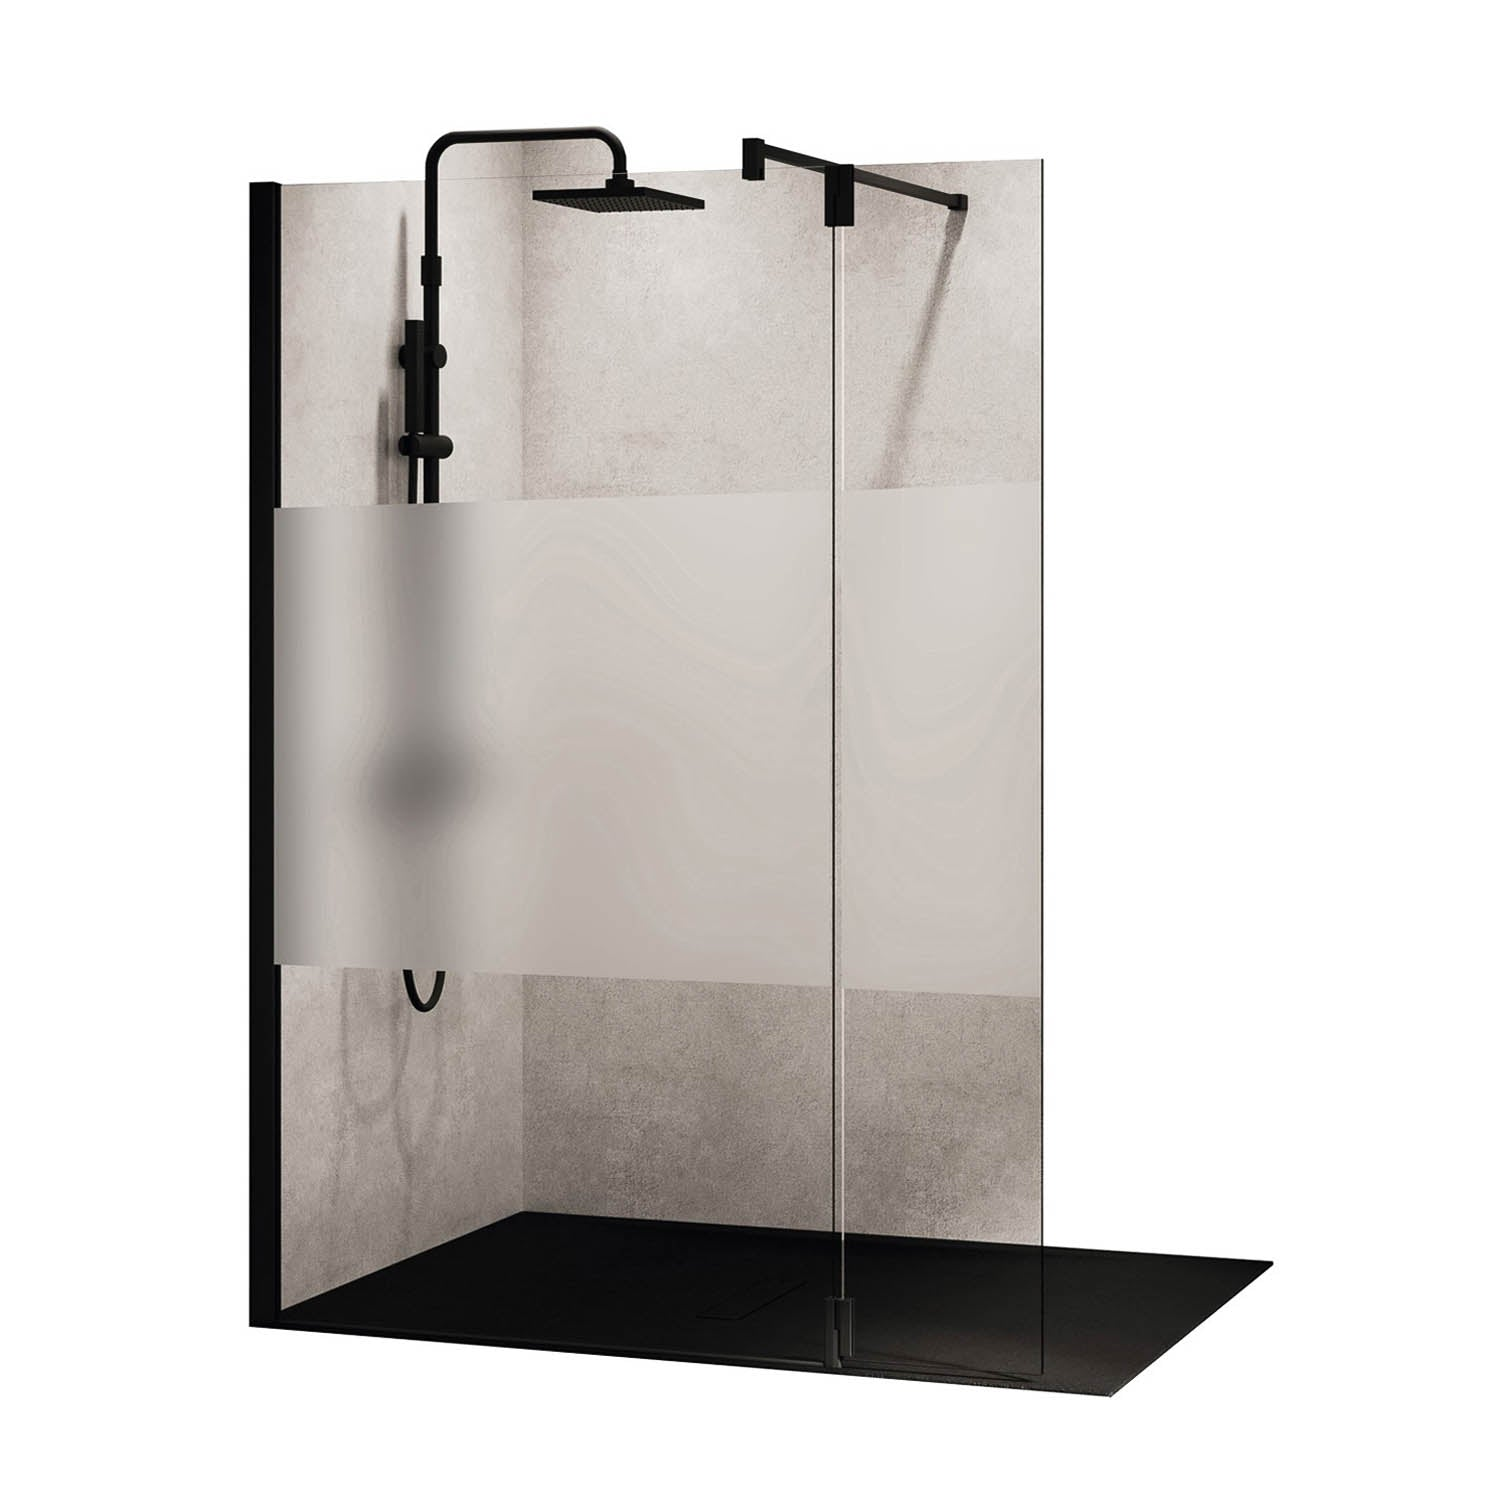 870-900mm Ergo Wet Room Screen Satin Band Glass with a matt black finish on a white background